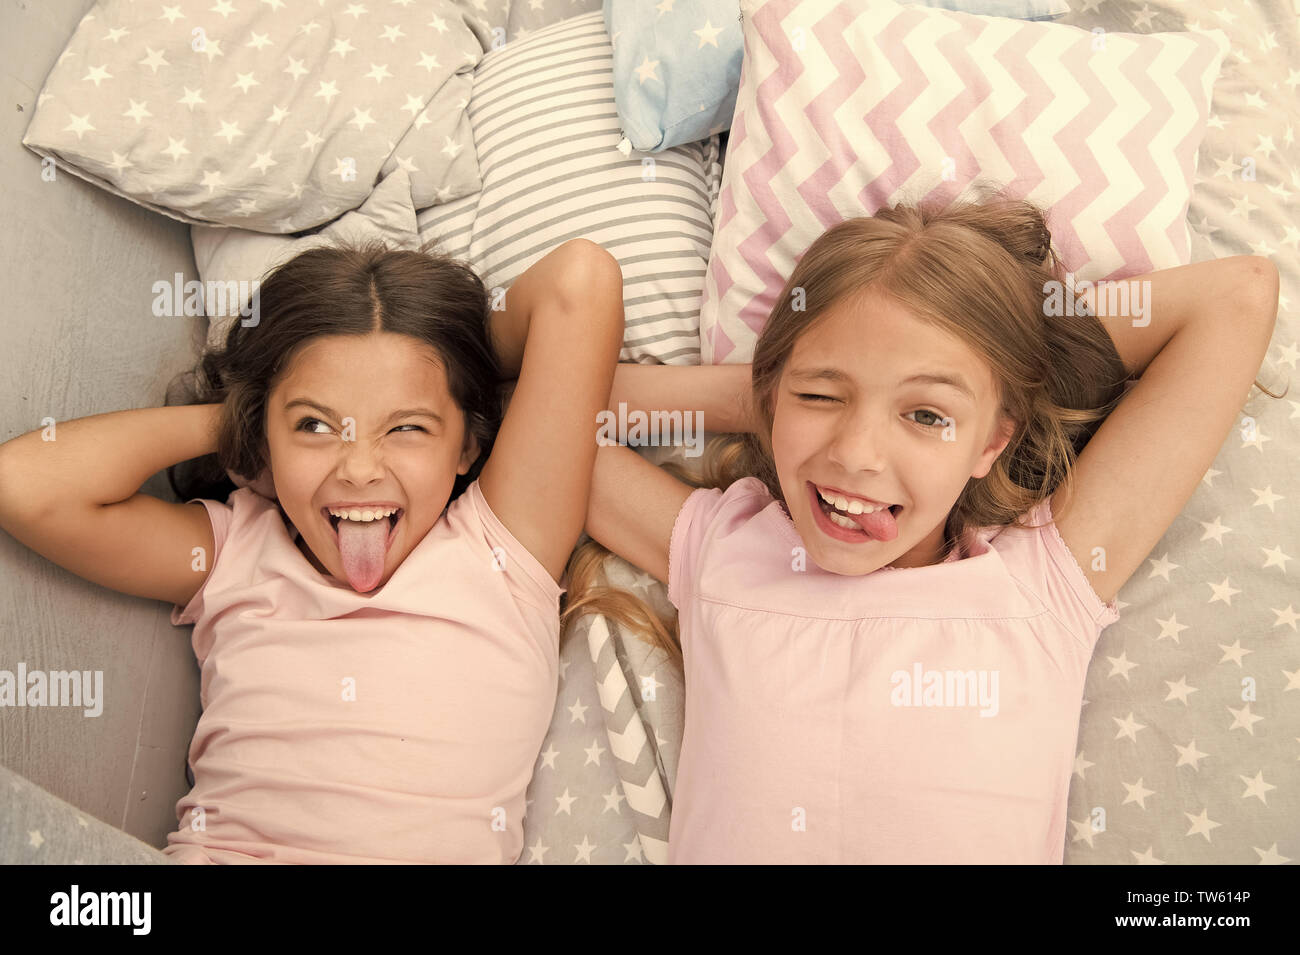 Slumber party timeless childhood tradition. Girls relaxing on bed. Slumber party concept. Girls just want to have fun. Invite friend for sleepover. Be - Stock Image